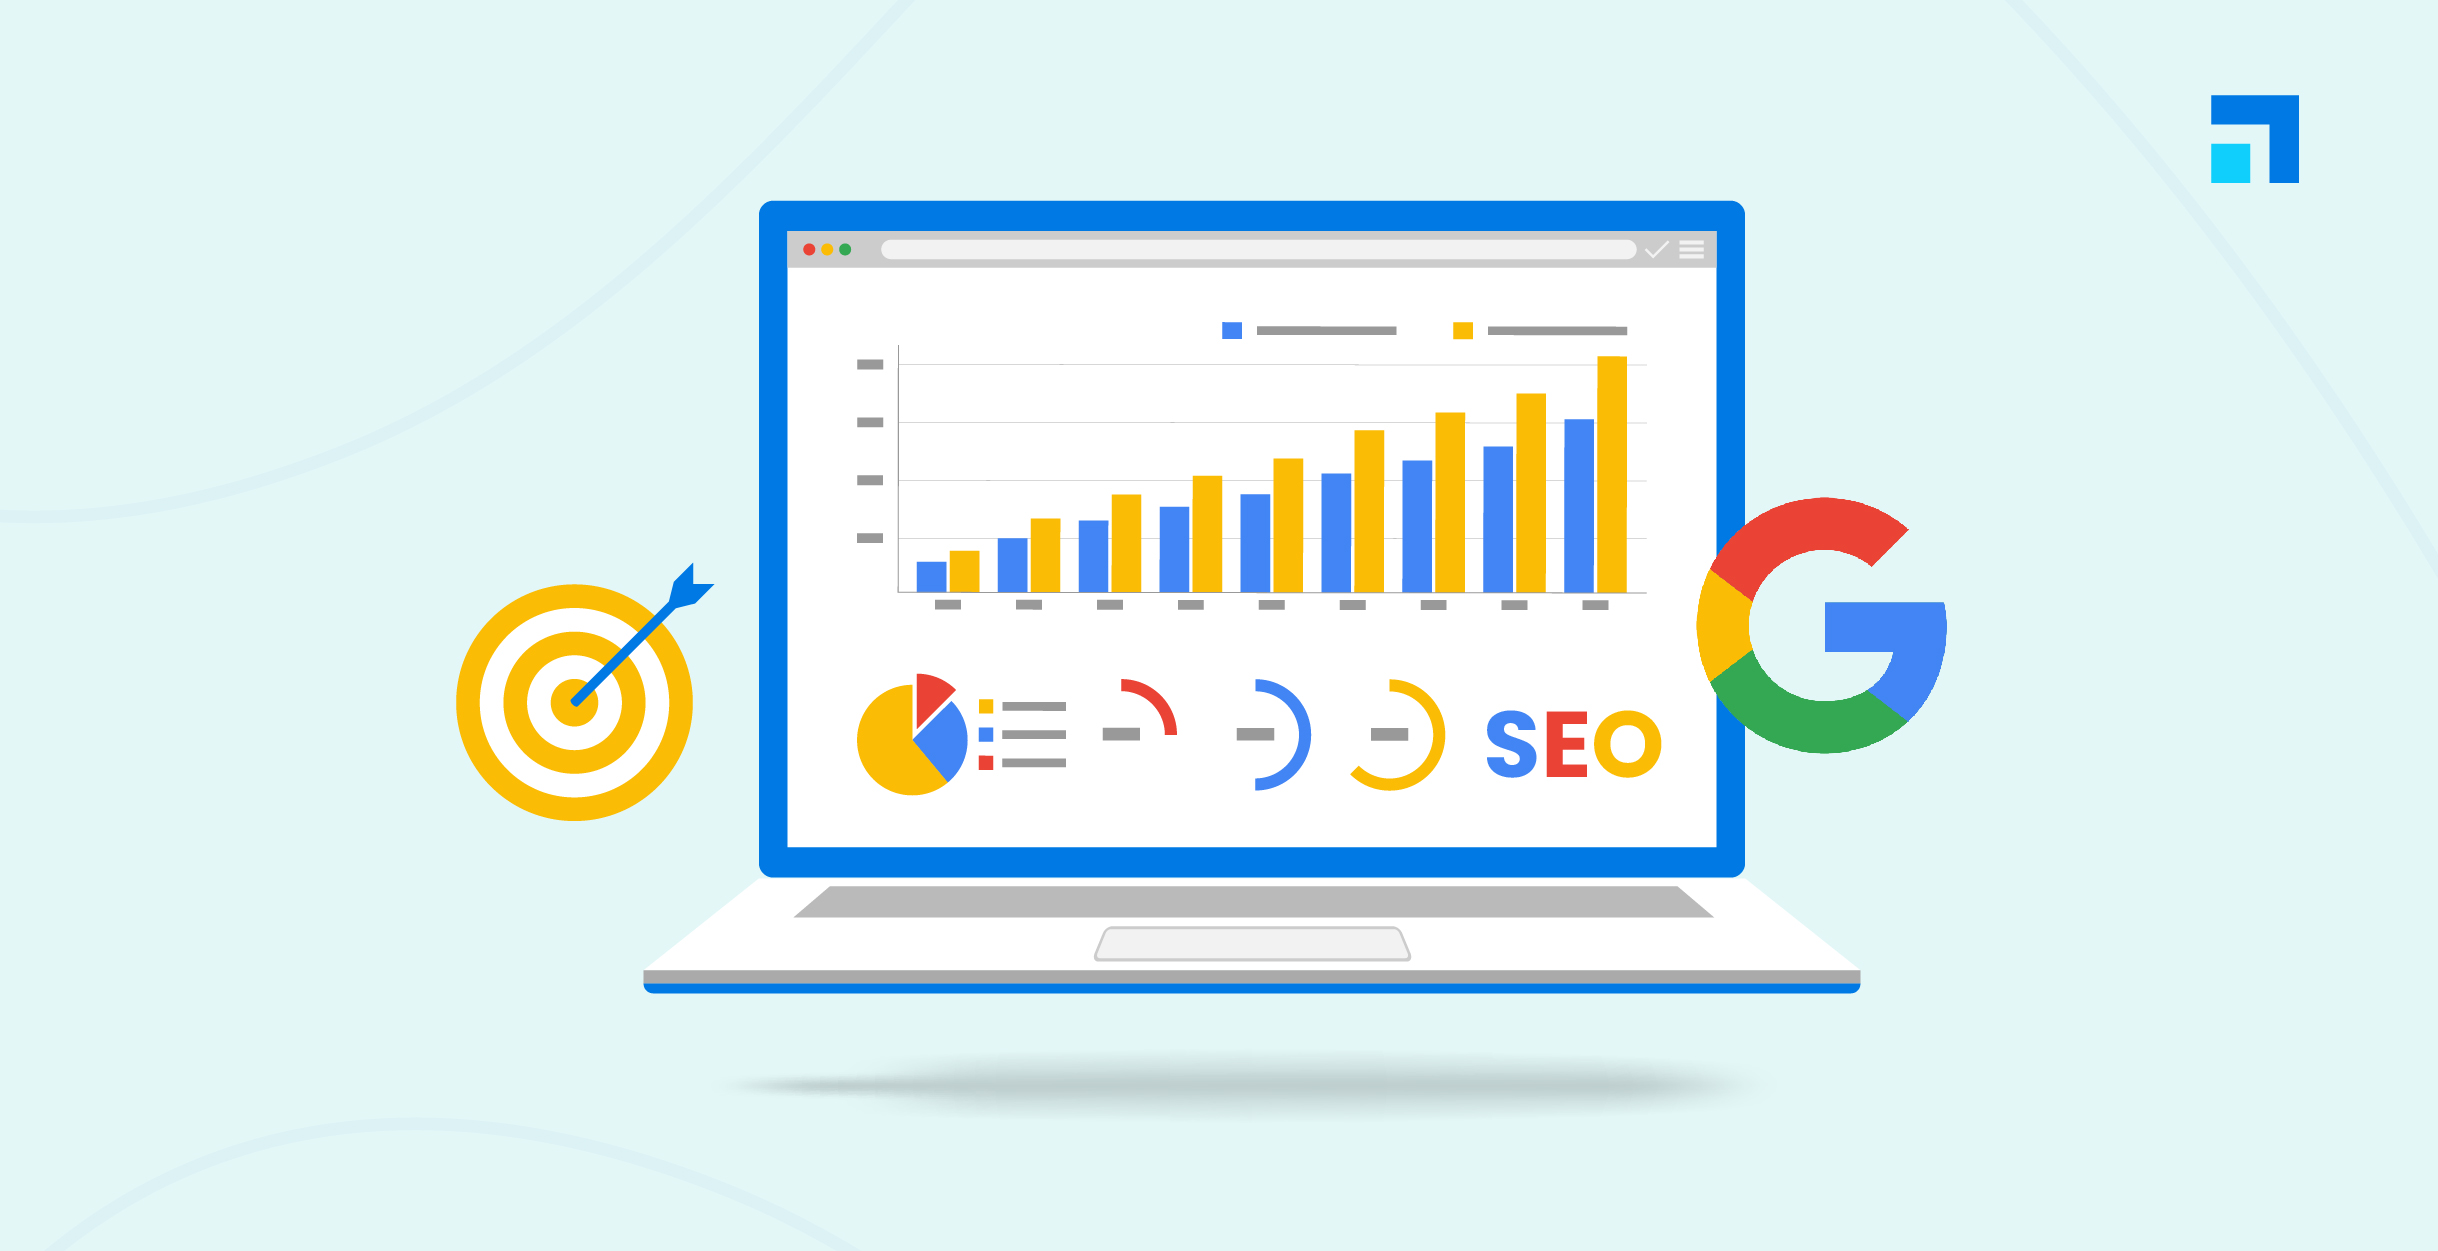 10+ Best Free Google SEO Tools To Use In 2021